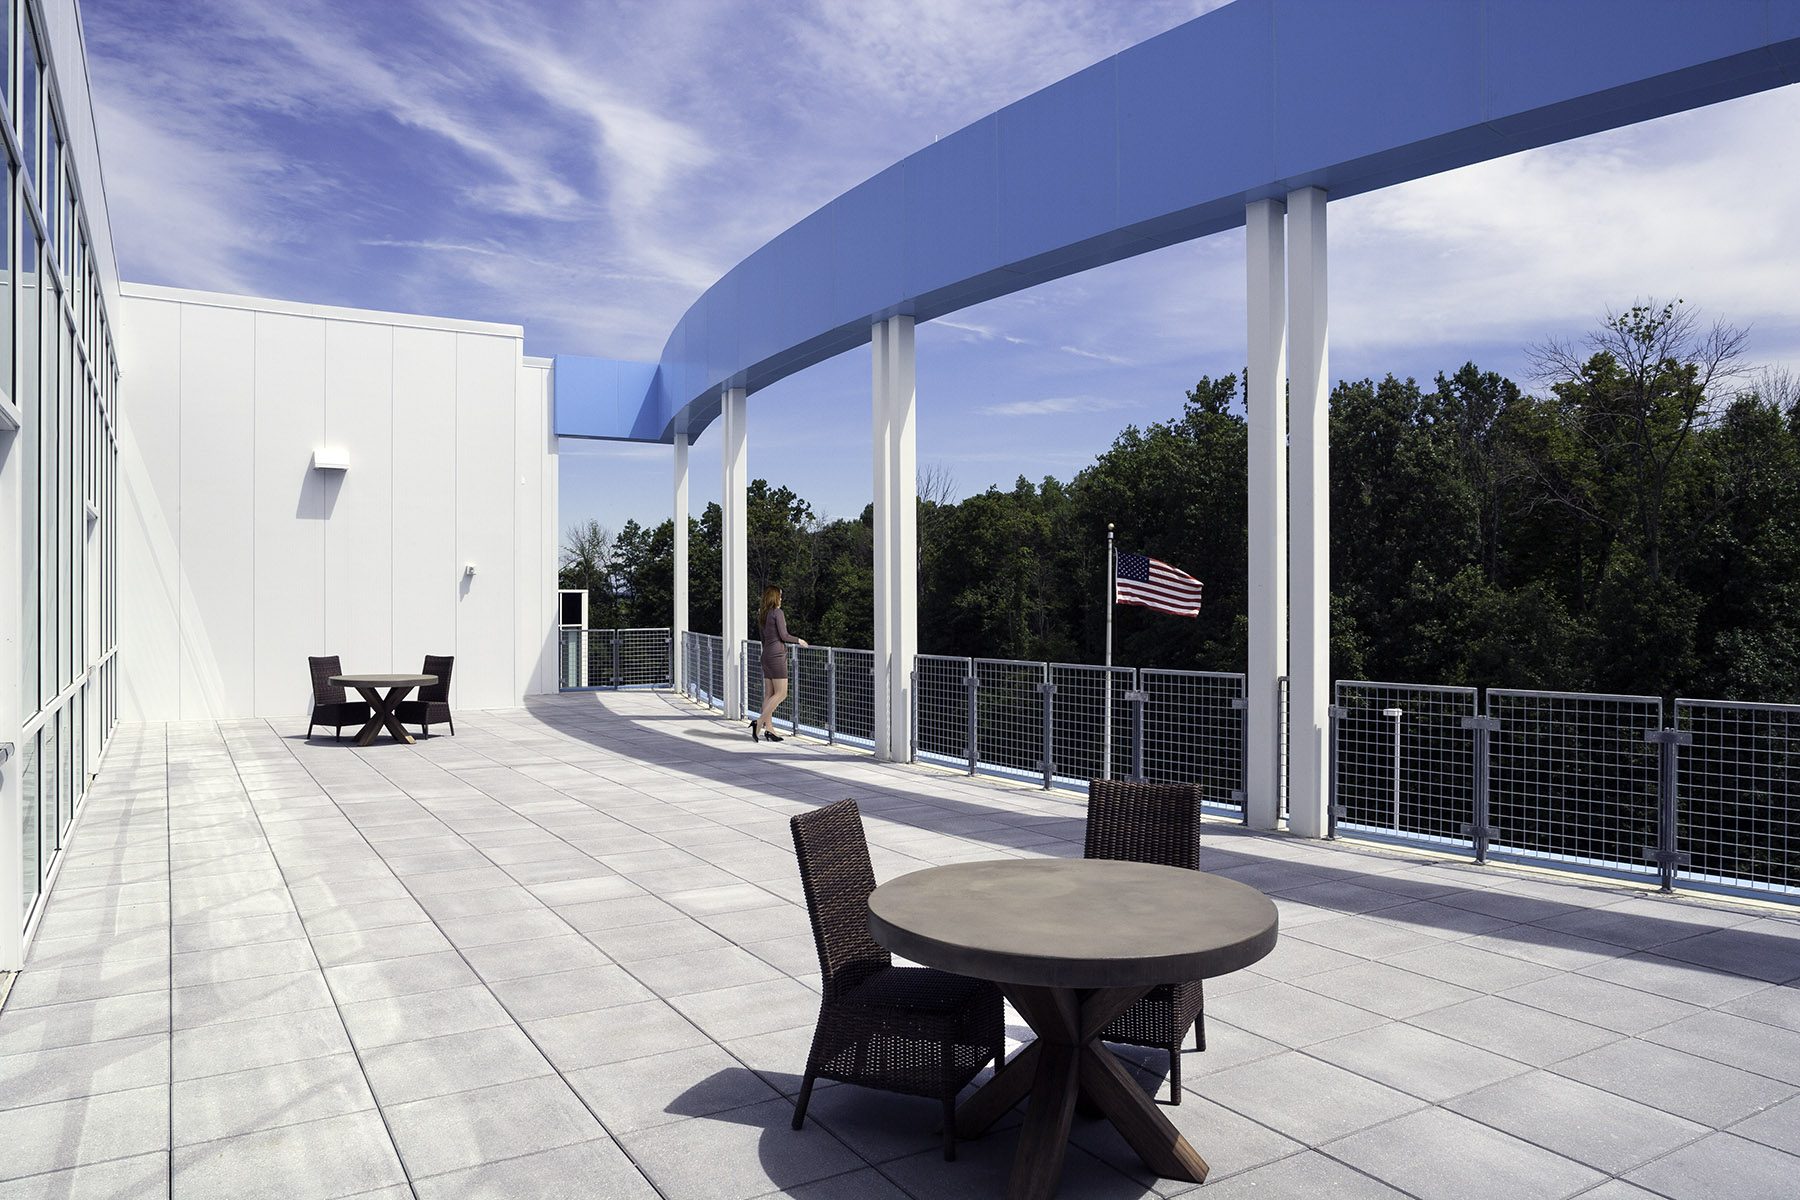 Terrace at Ascena Offices and Distribution Center, Pataskala, Ohio